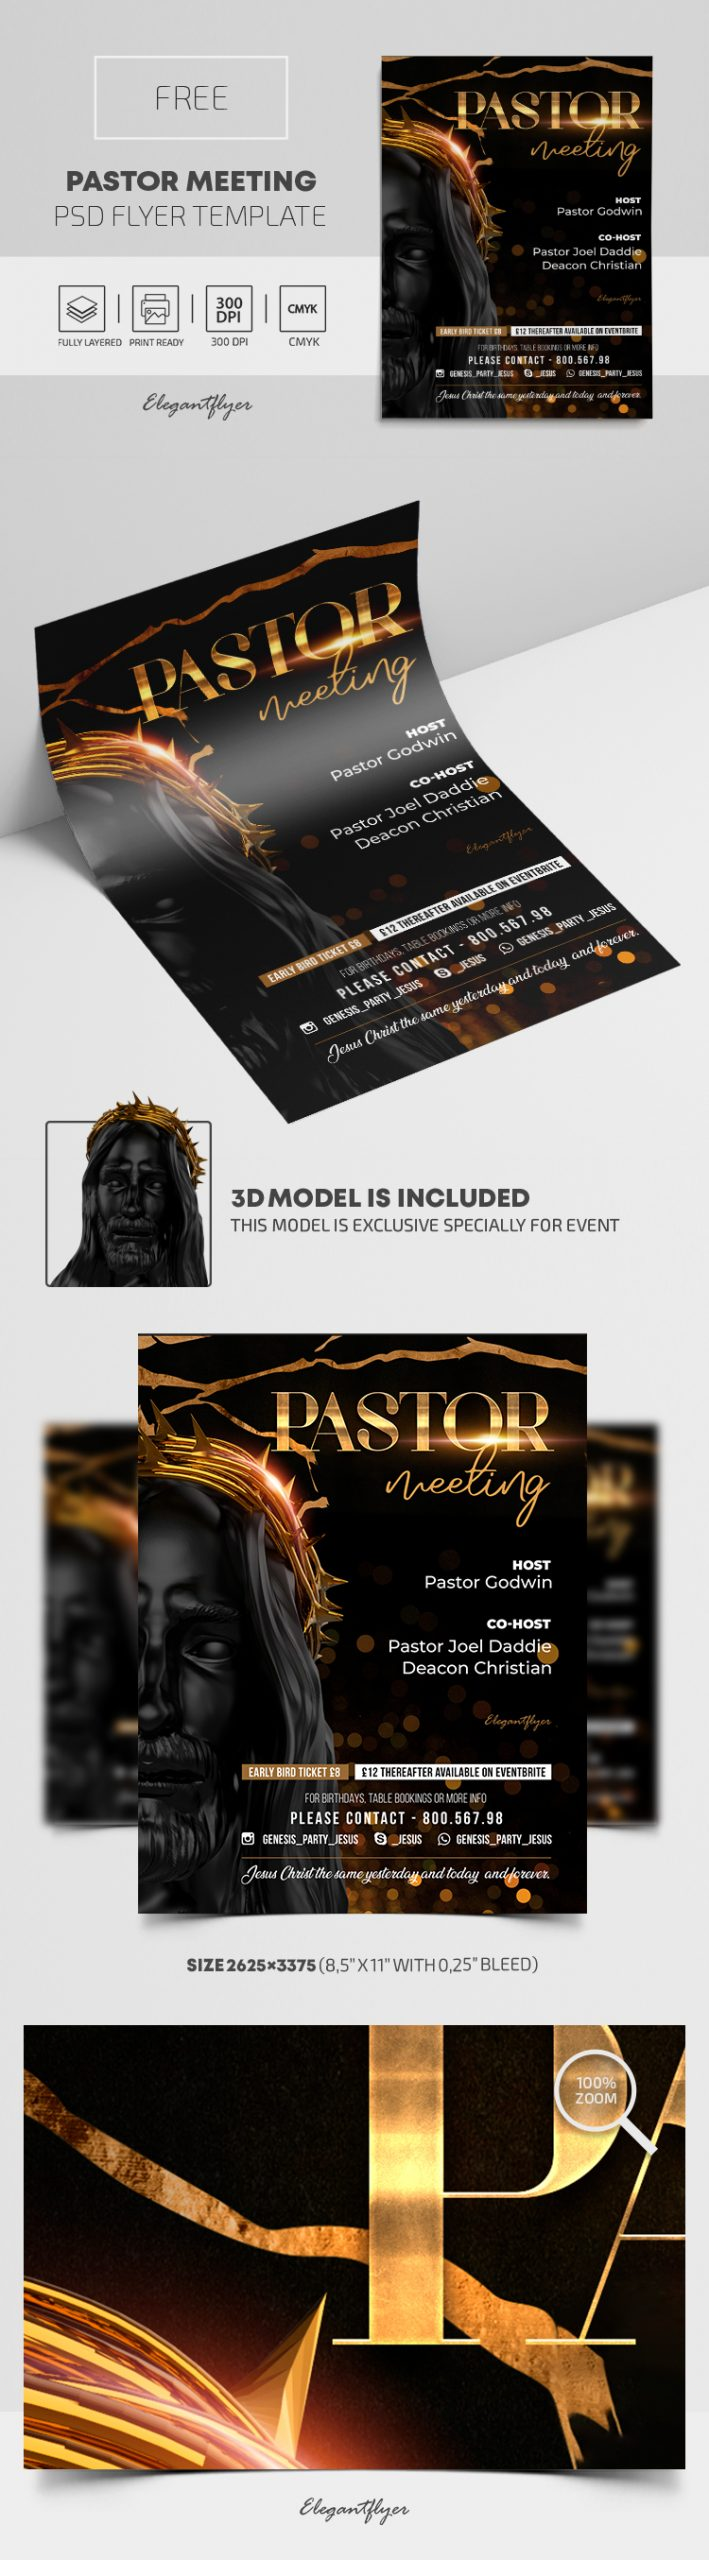 Pastor Meeting – Free PSD Flyer Template